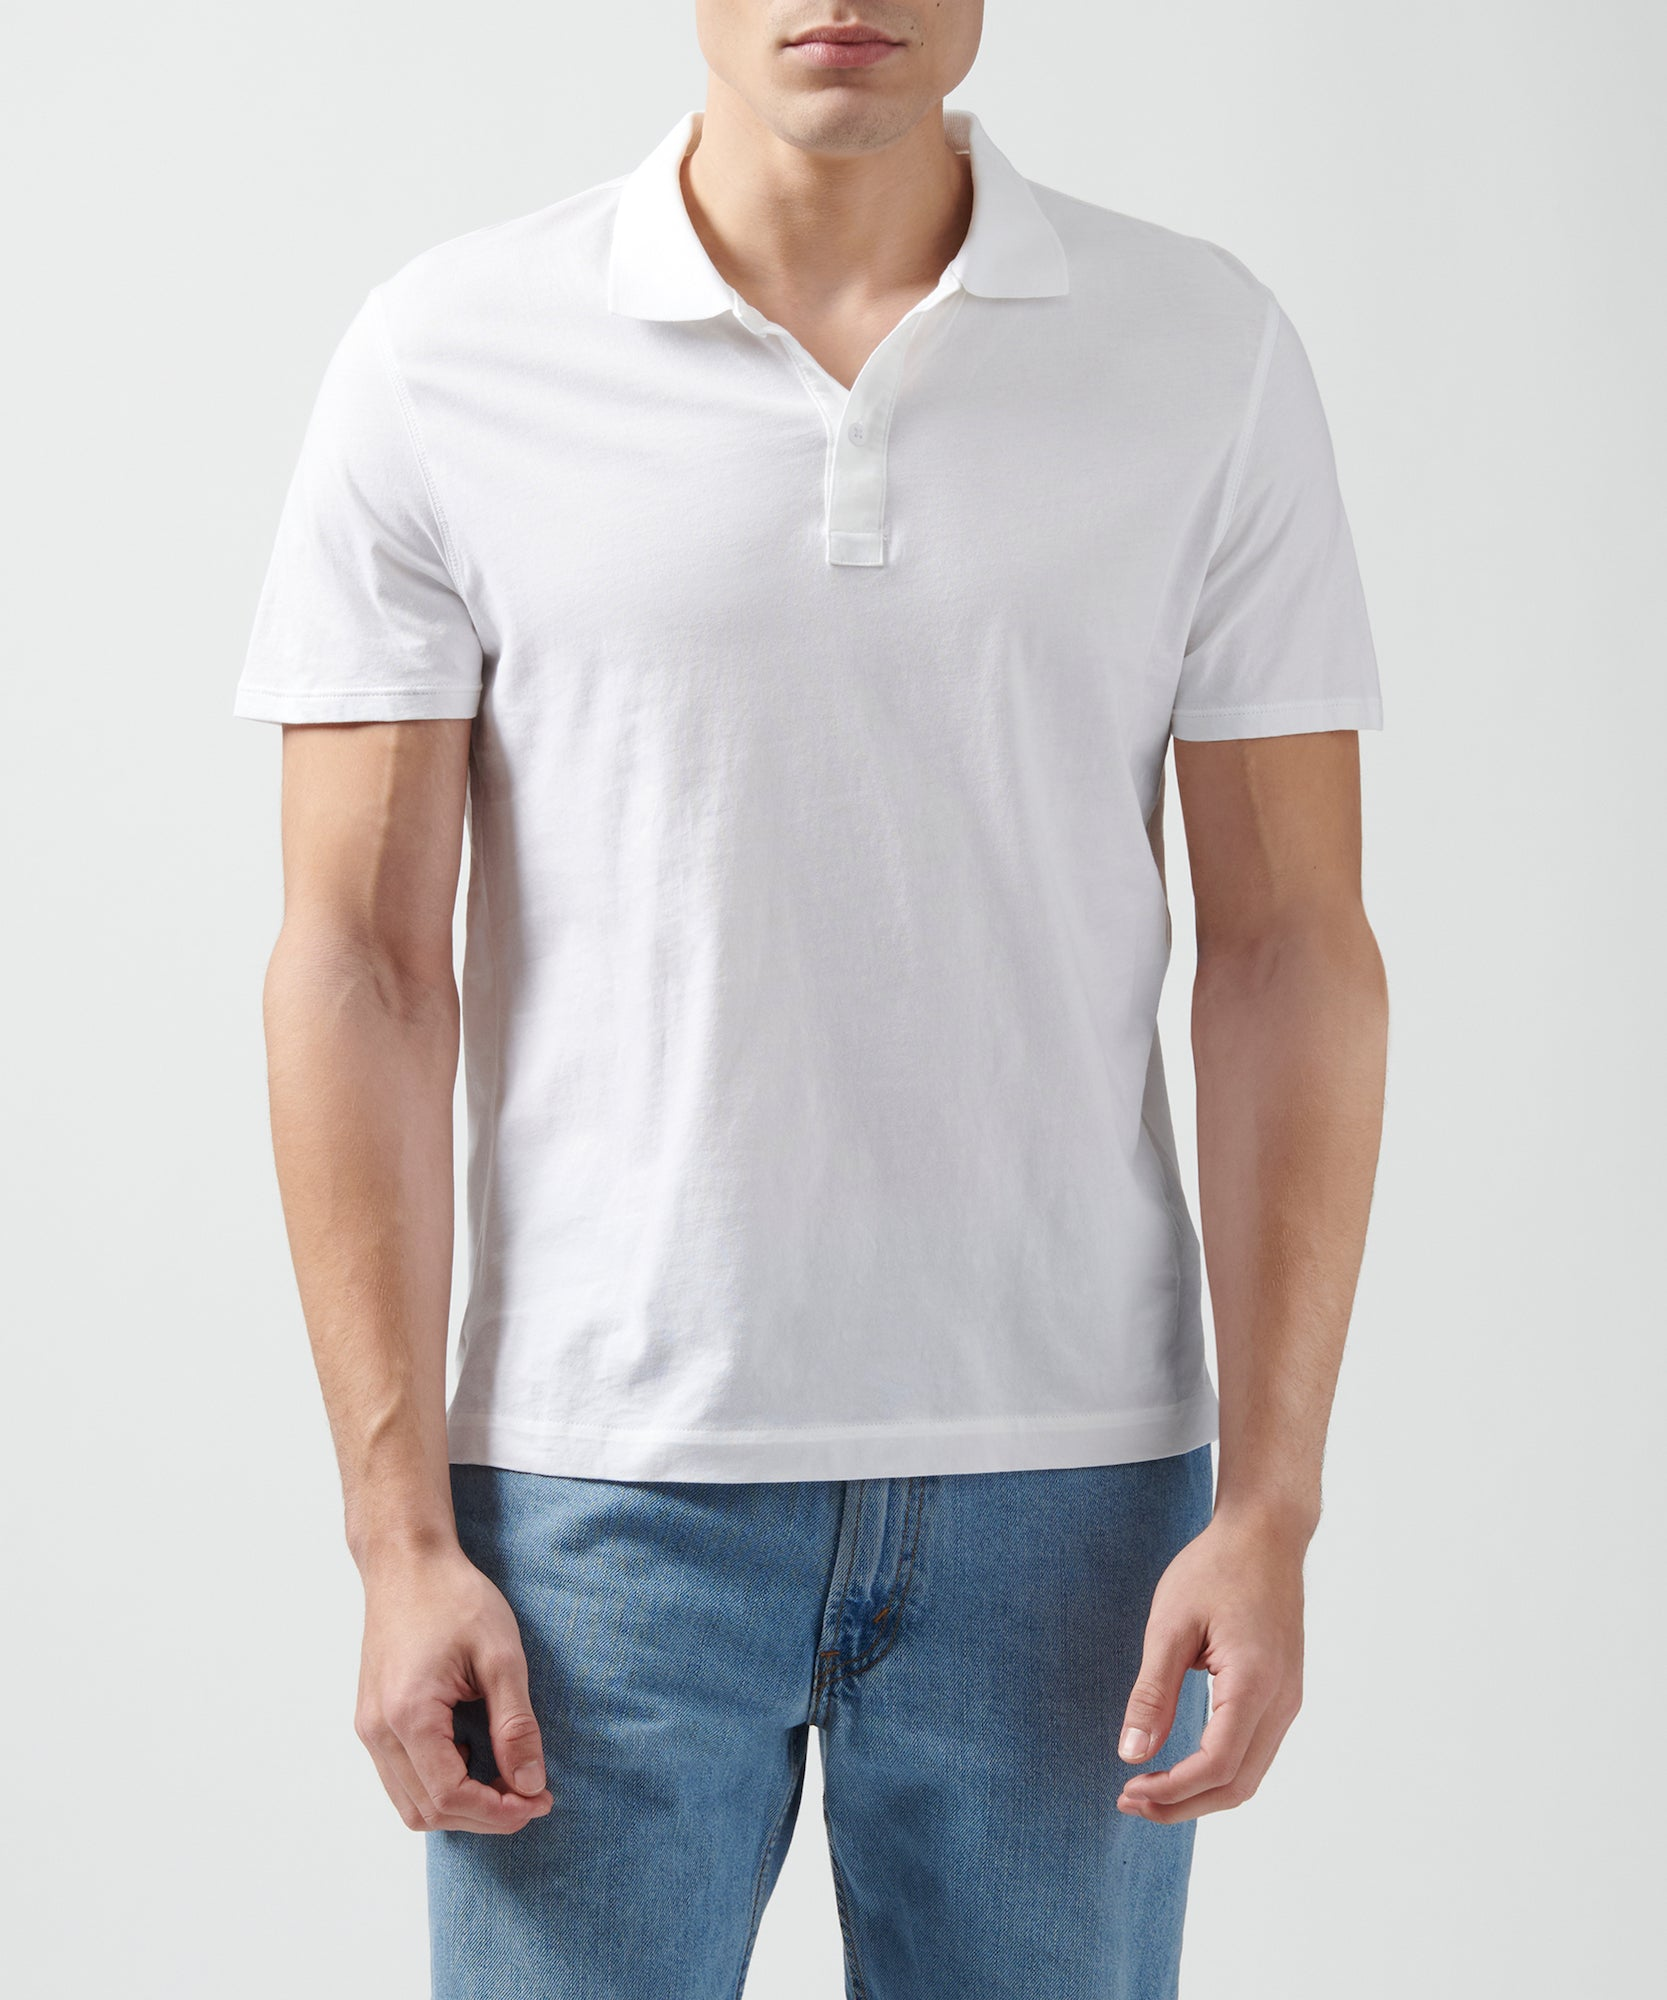 White Classic Jersey Polo - Men's Polo Shirt by ATM Anthony Thomas Melillo